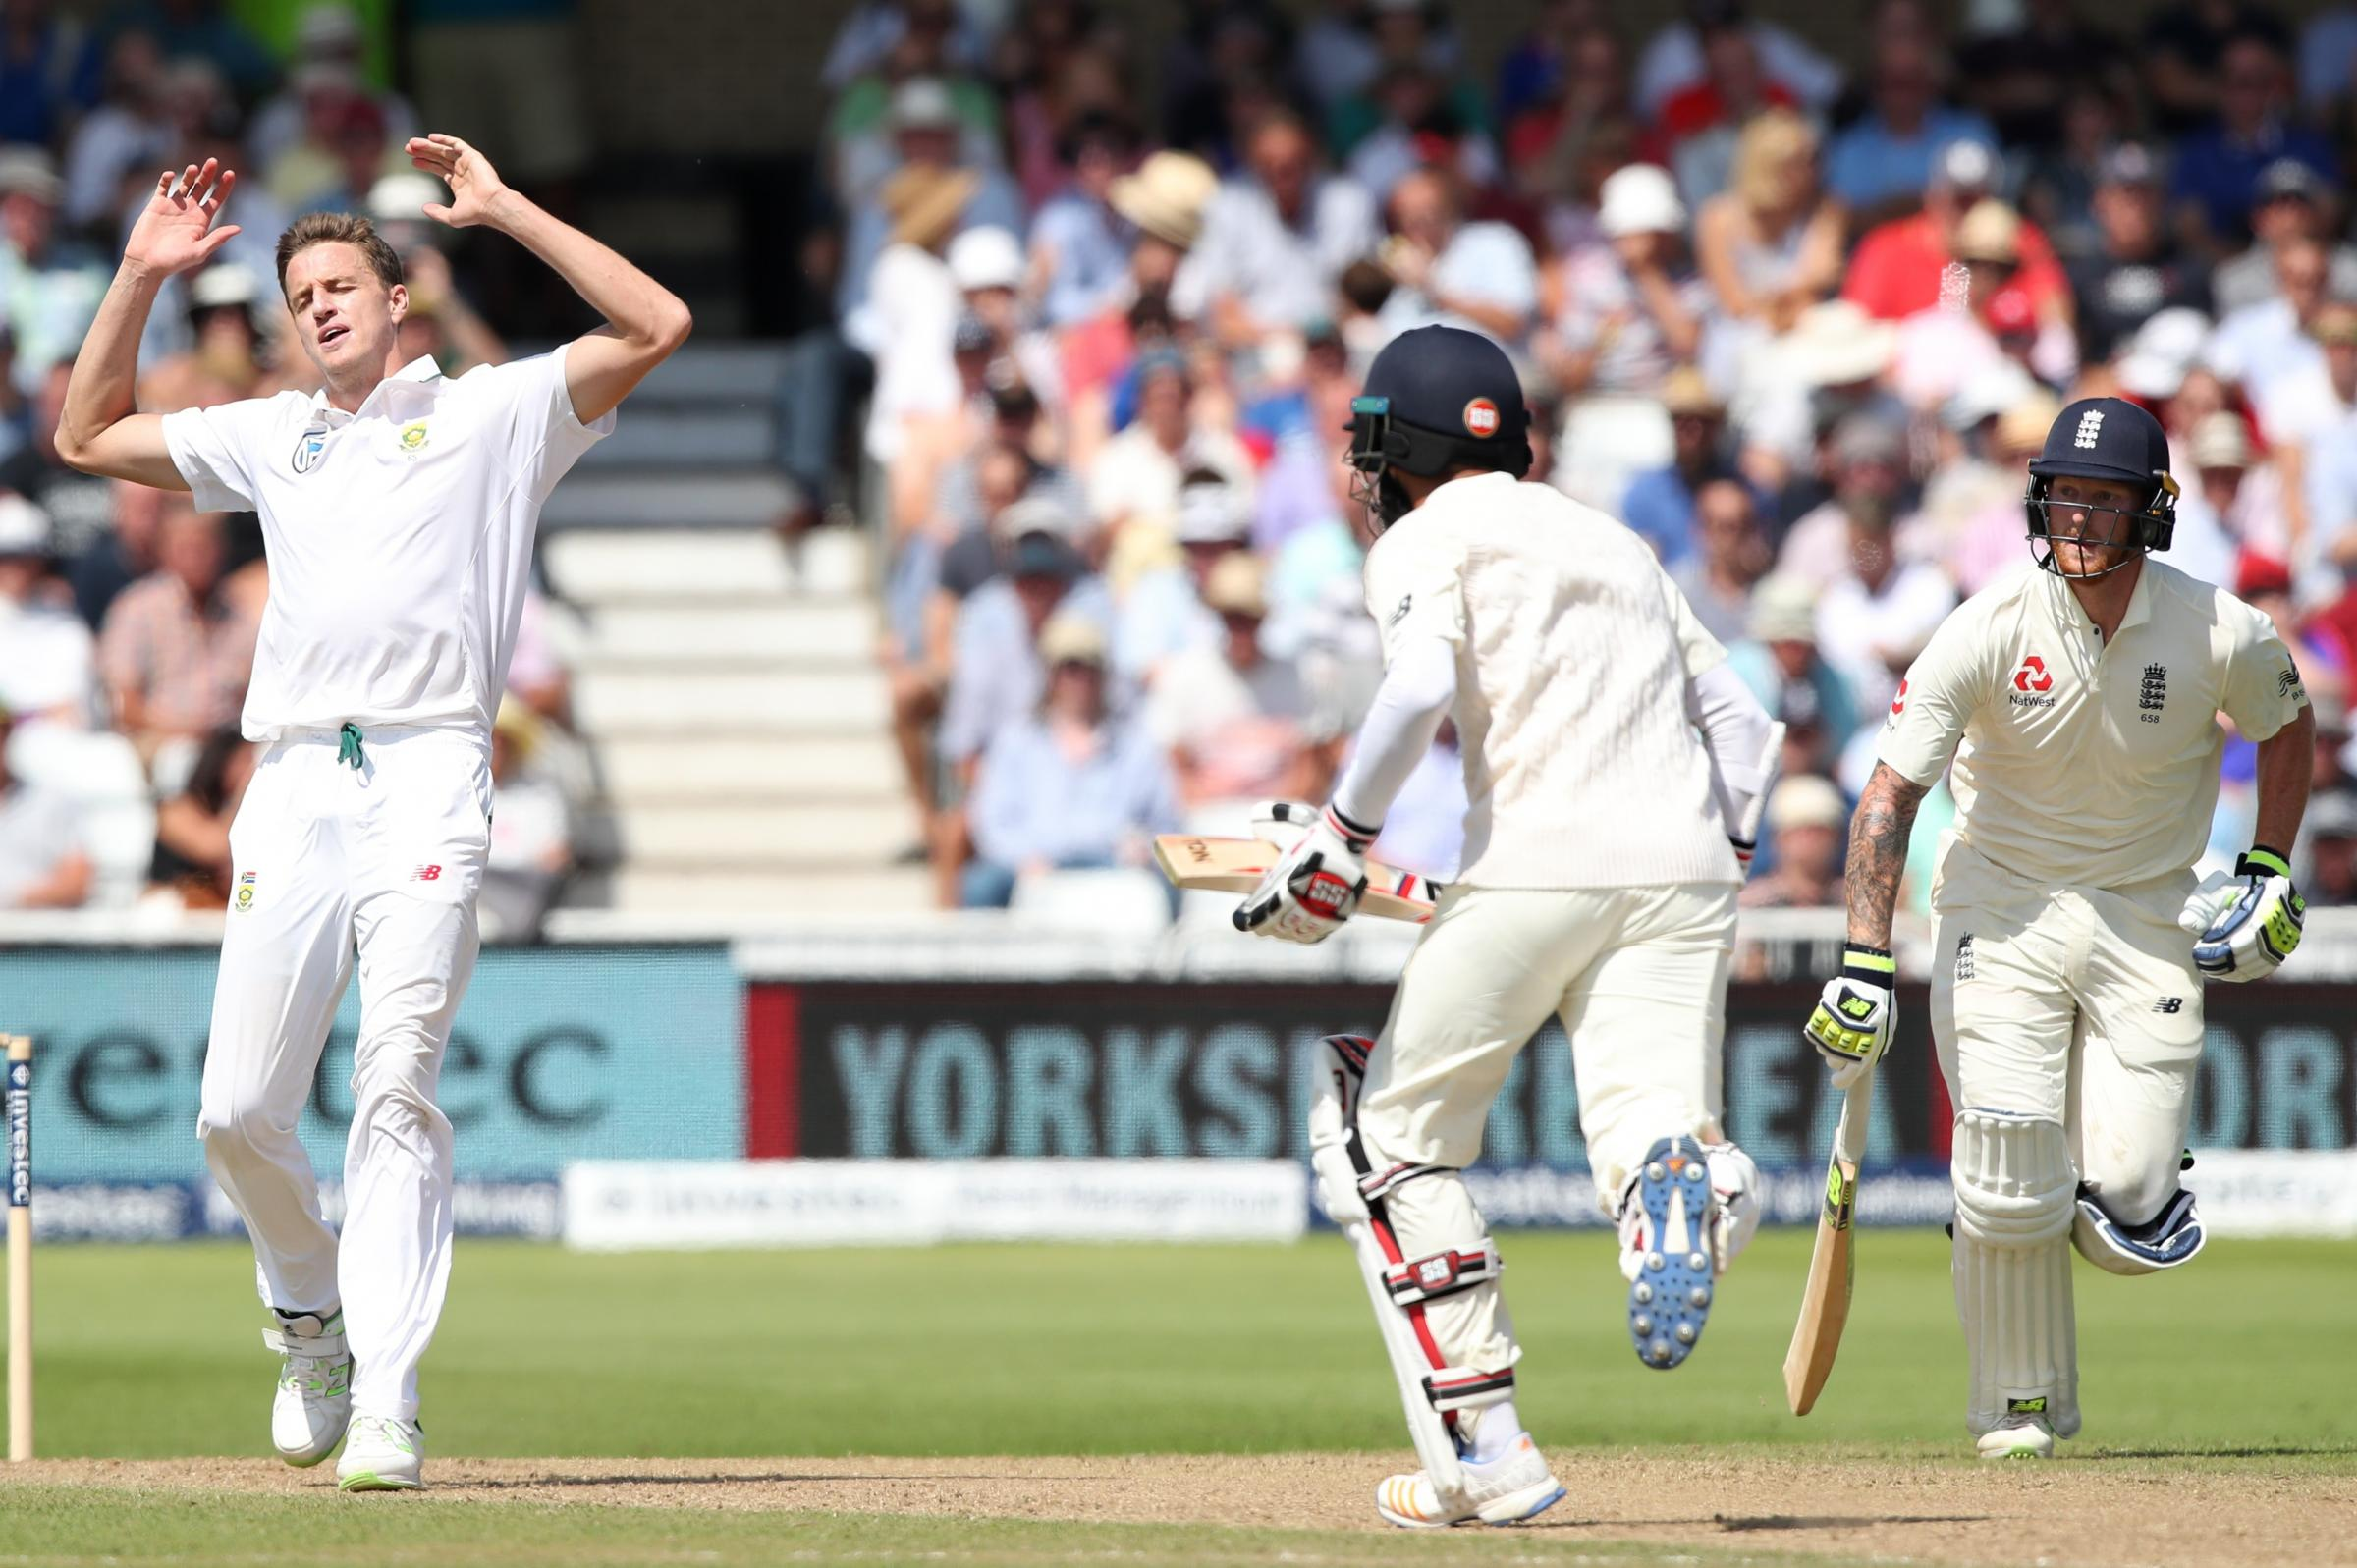 South Africa's Morne Morkel in action against England at Trent Bridge